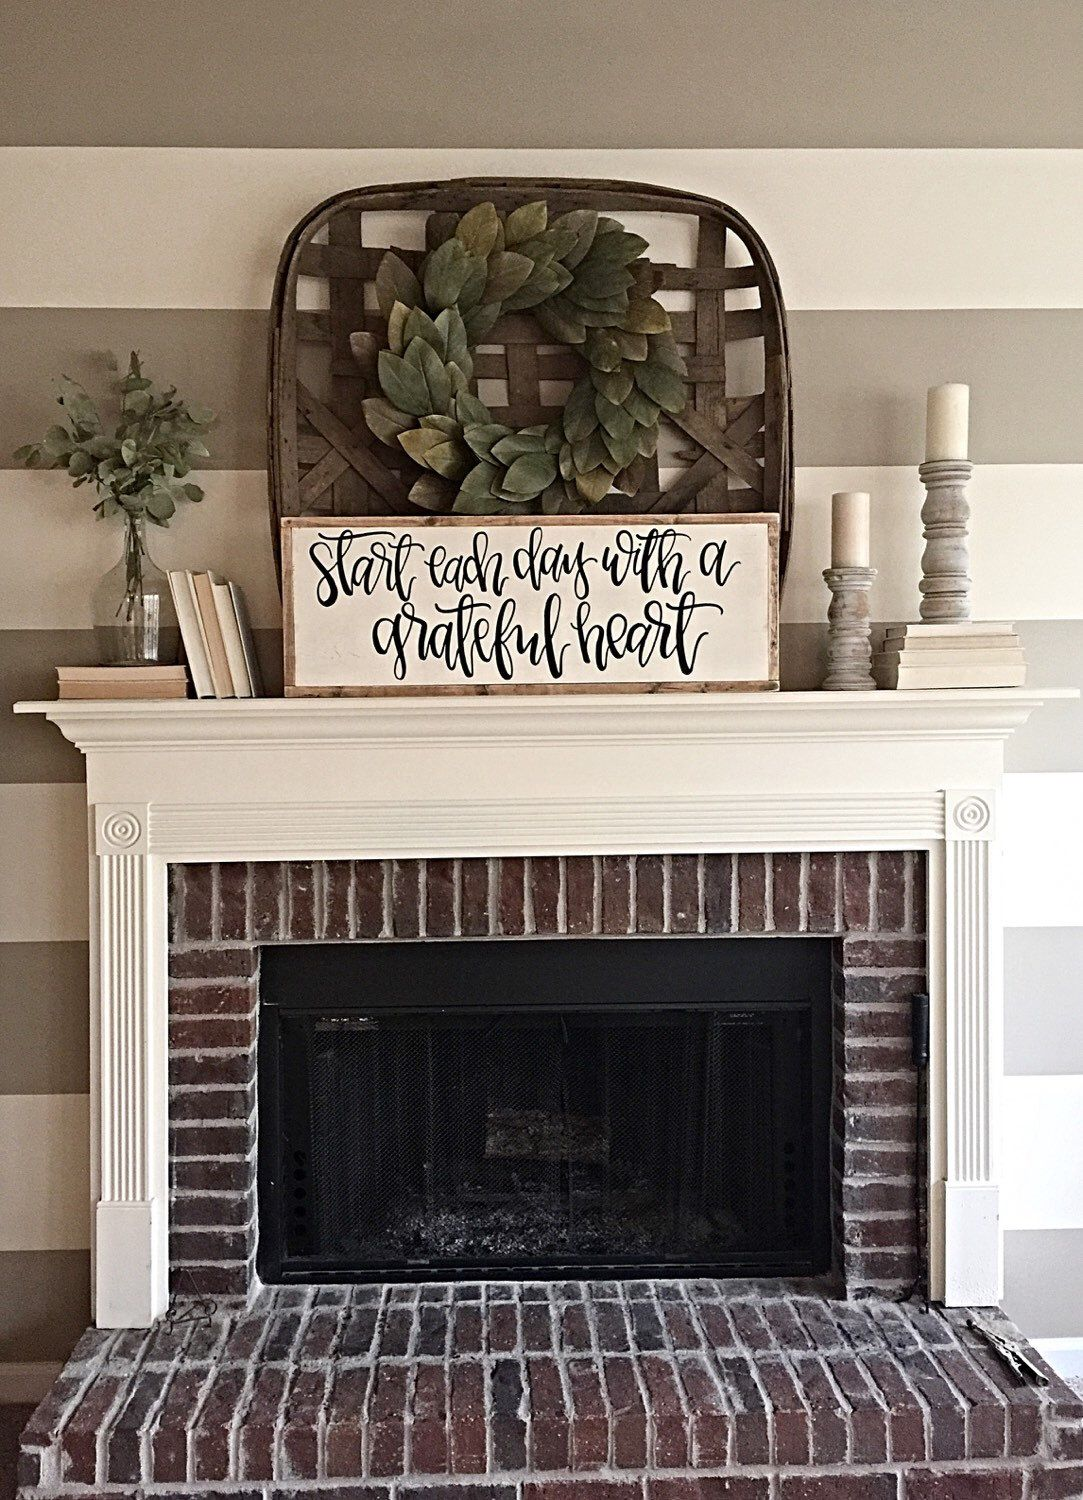 Photo of Live Gratefully   Grateful Heart   Home Decor   Hand Painted Sign   Rustic   Start Each Day with A Grateful Heart   Fixer Upper   Farmhouse